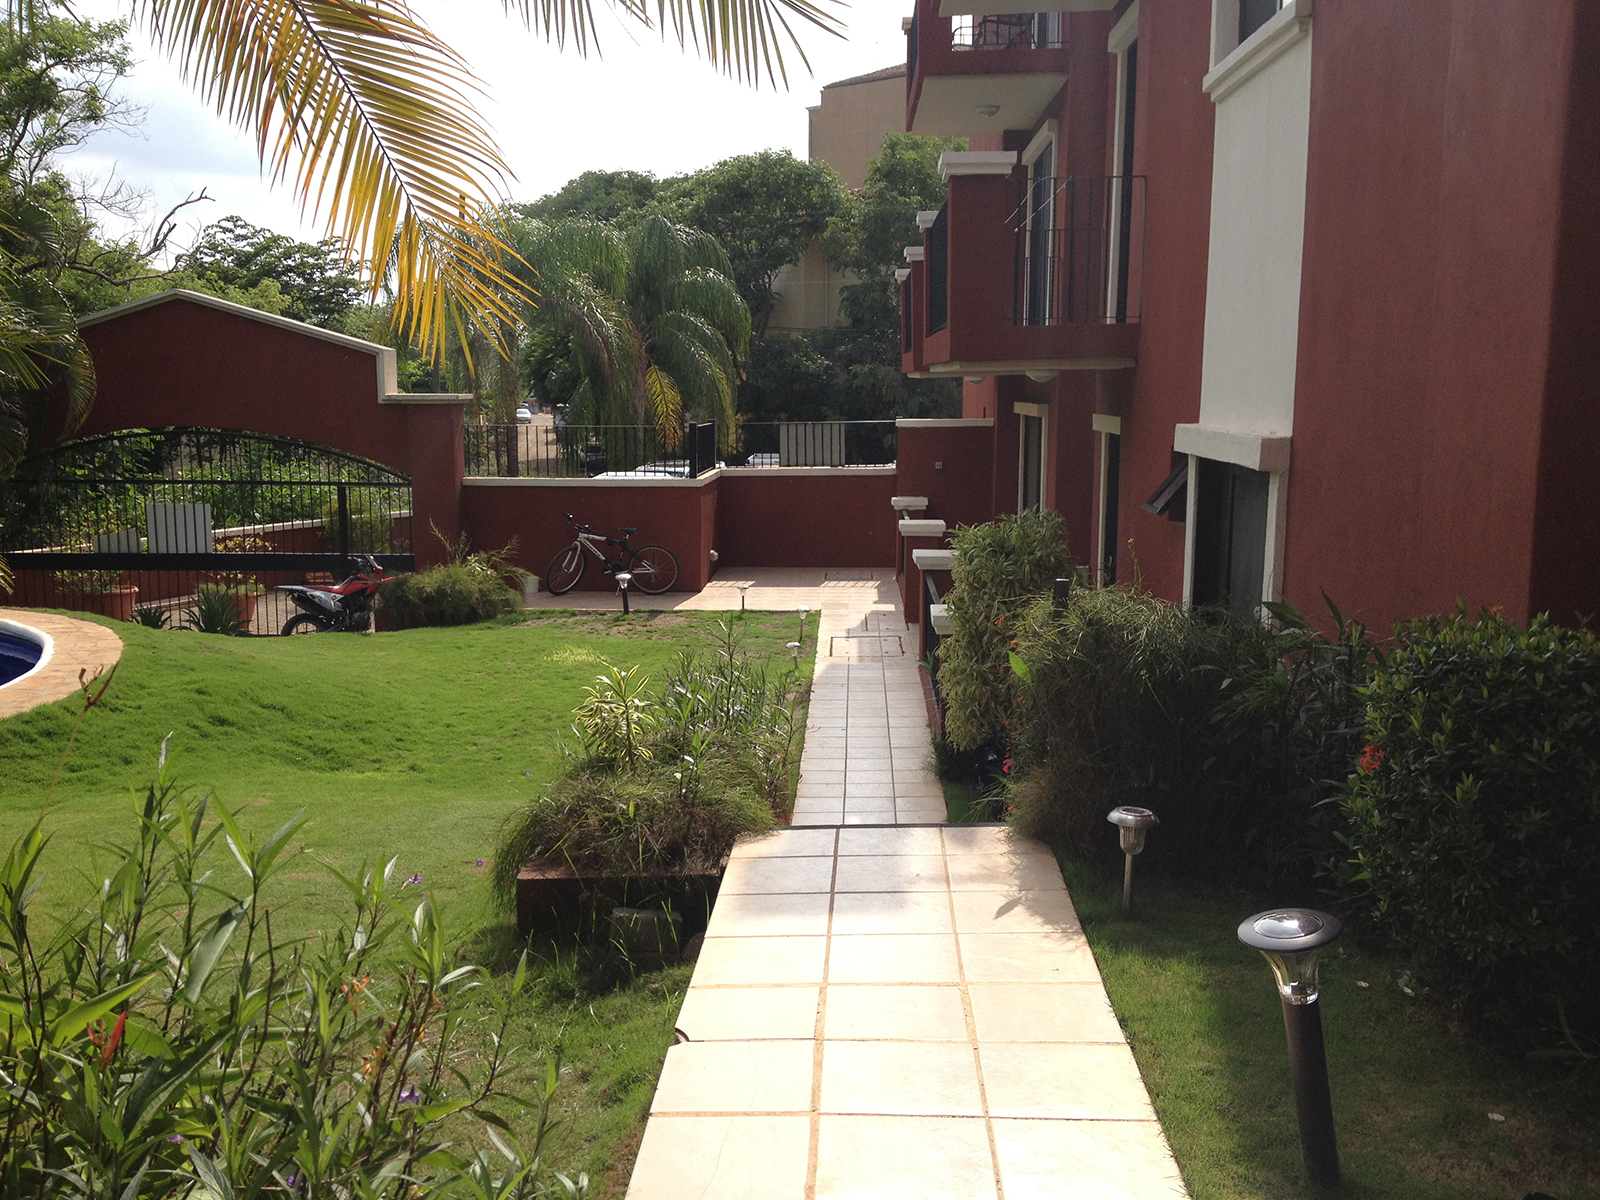 condos, north pacific, guanacaste, for sale, affordable, one bedroom, close to the beach, center condos